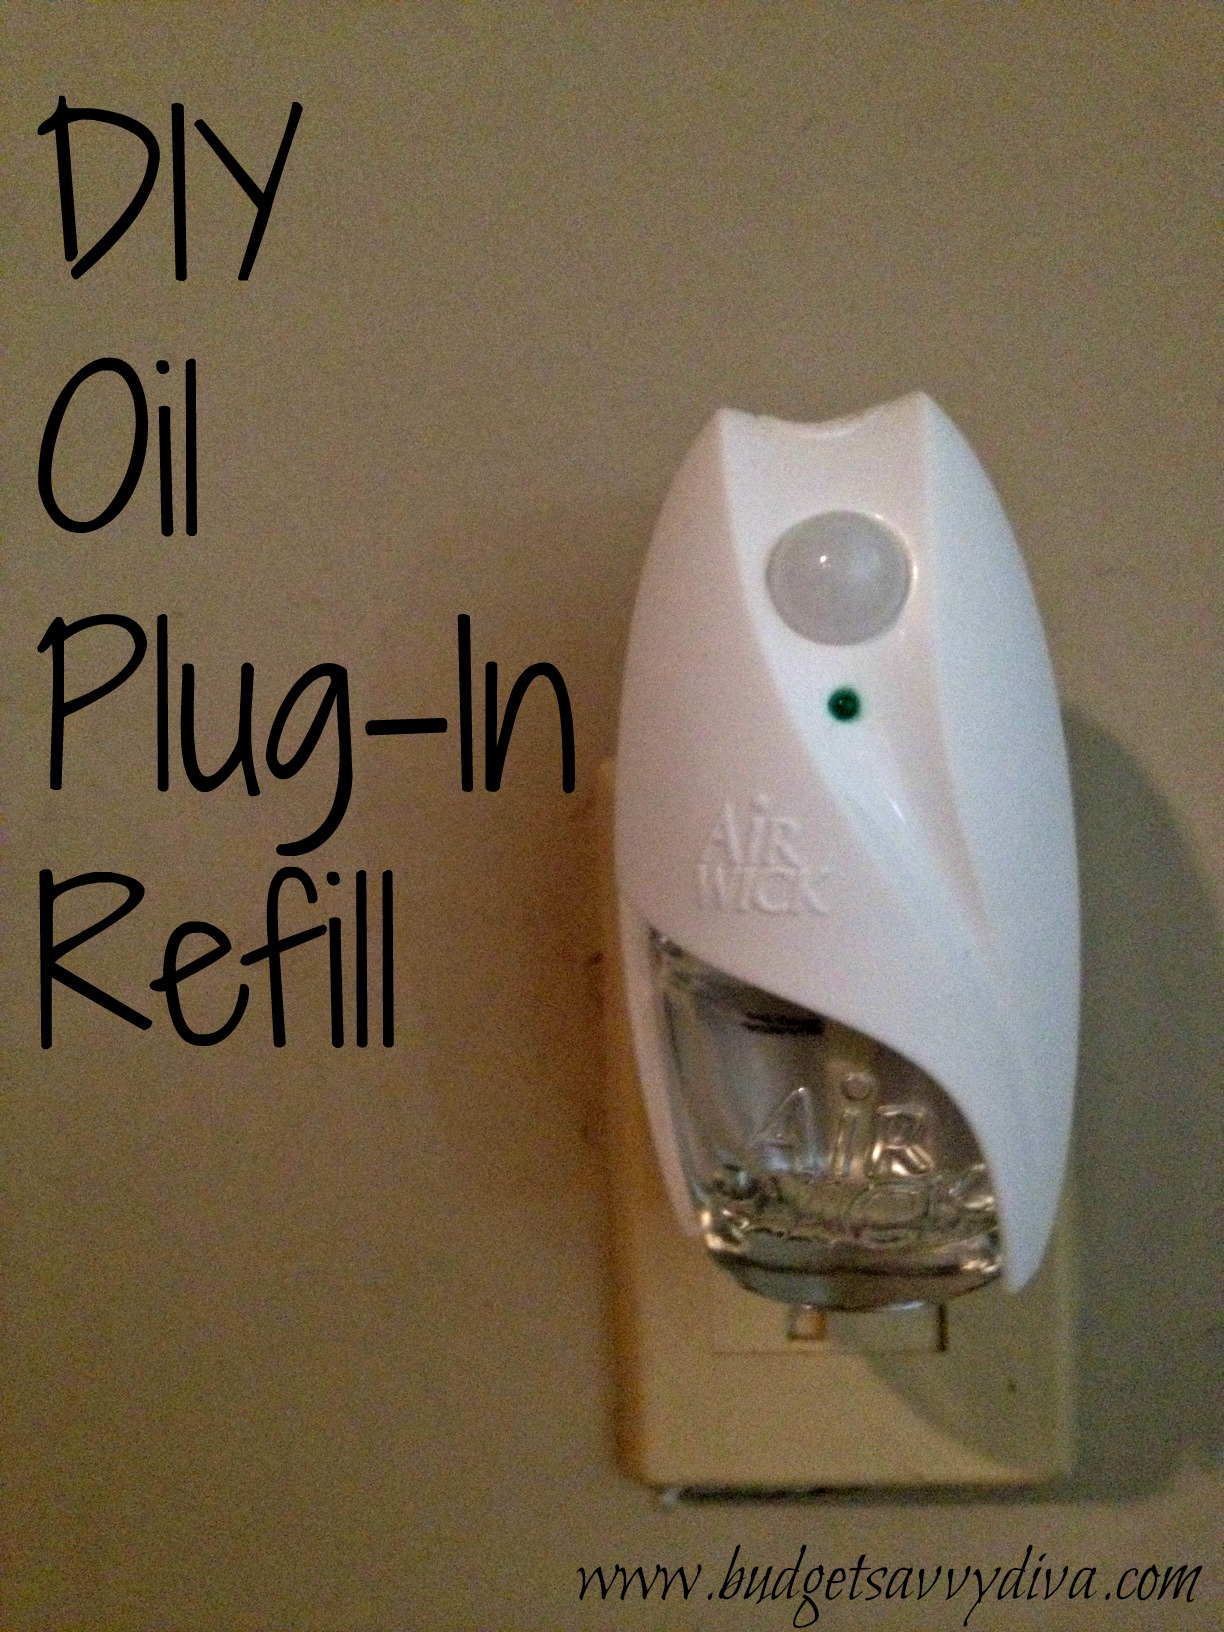 How To Make Homemade Scented Oil Plug In Refills Budget